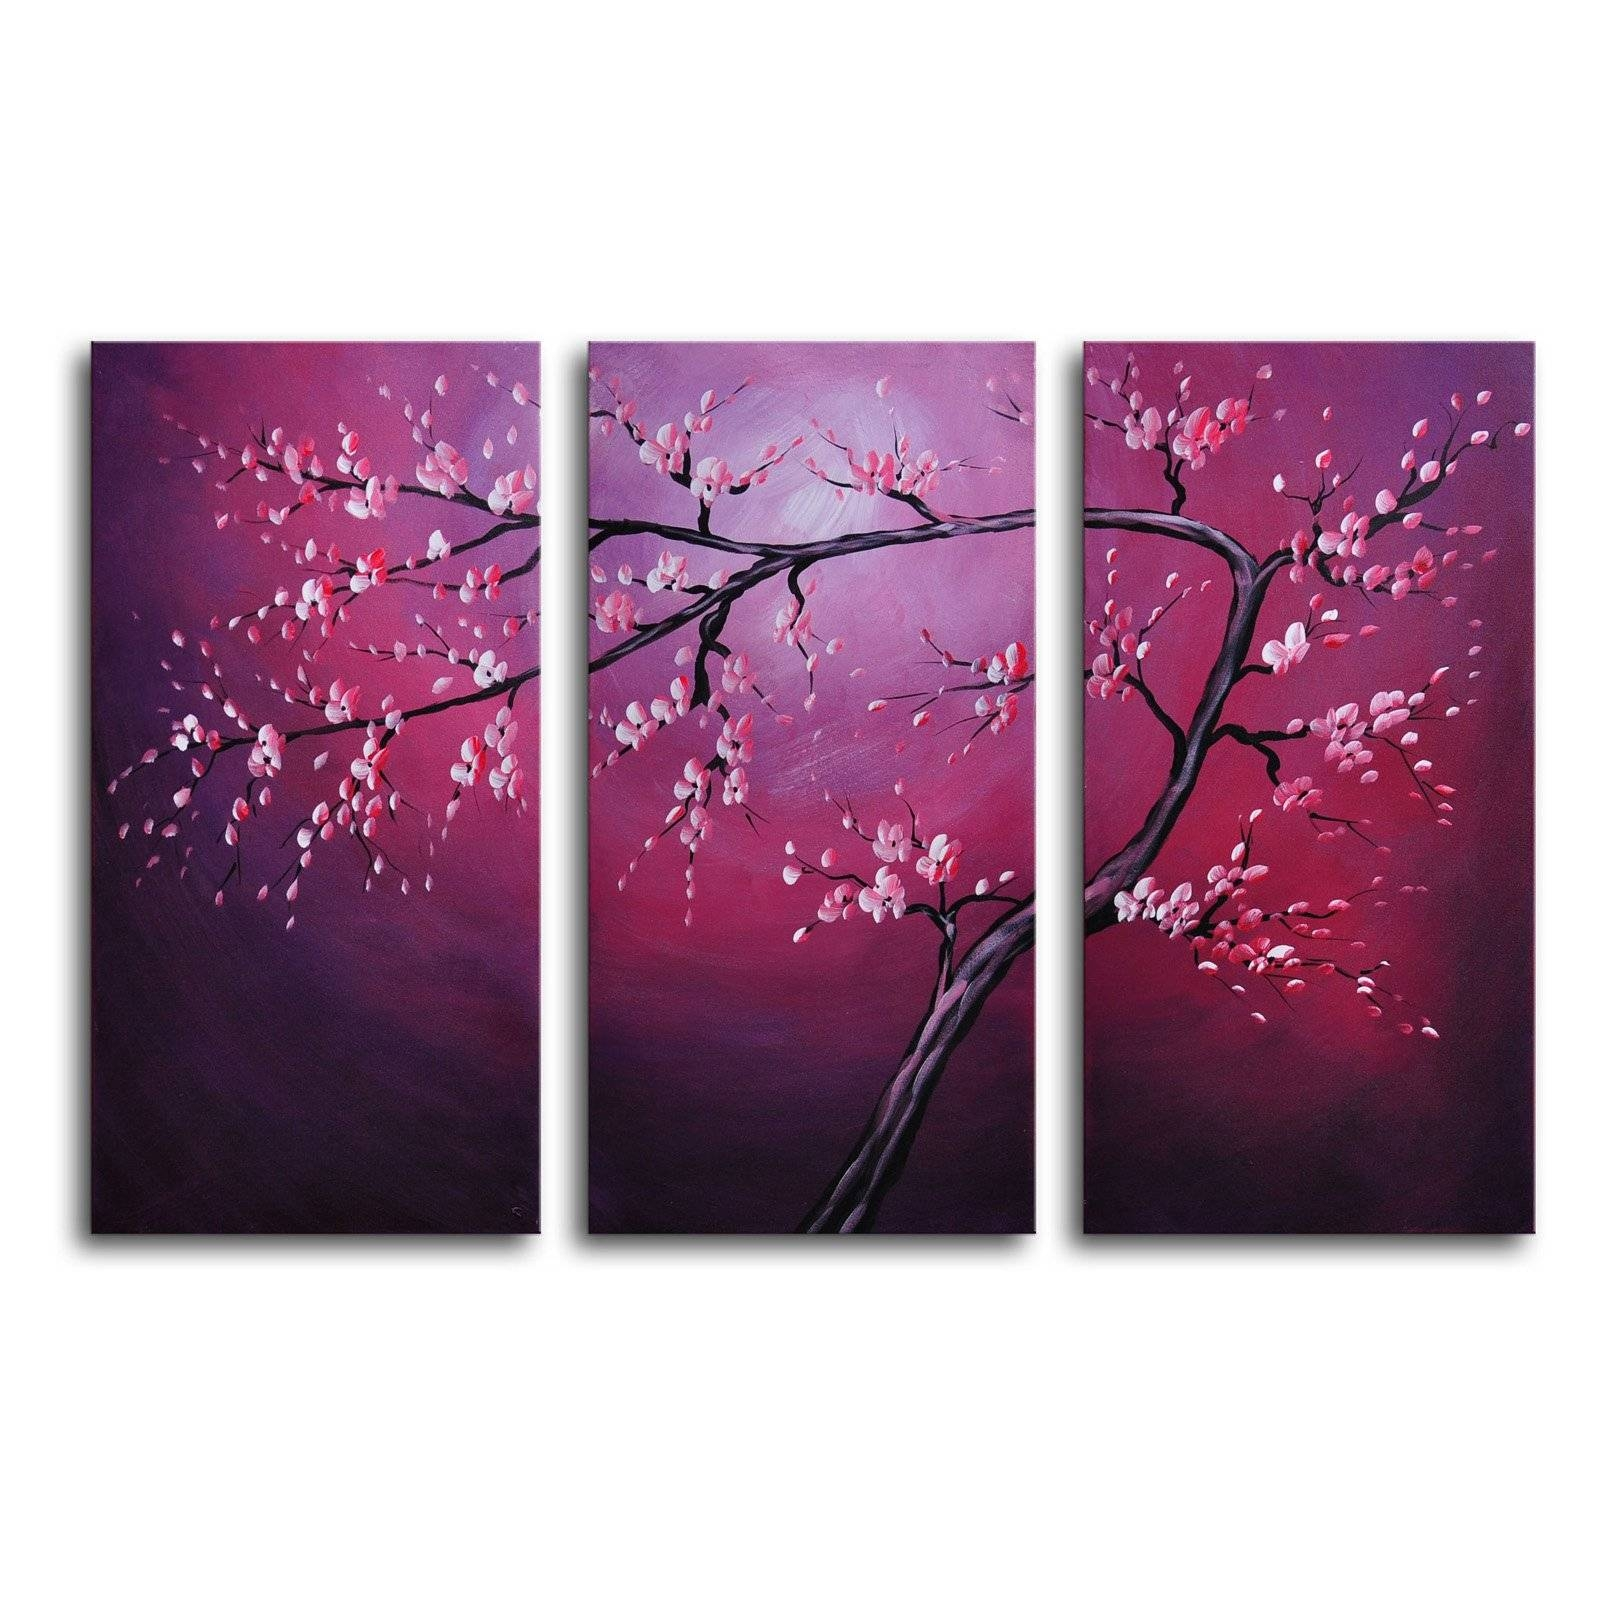 Pink On Crimson 3 Piece Canvas Wall Art – 36W X 24H In (View 10 of 20)